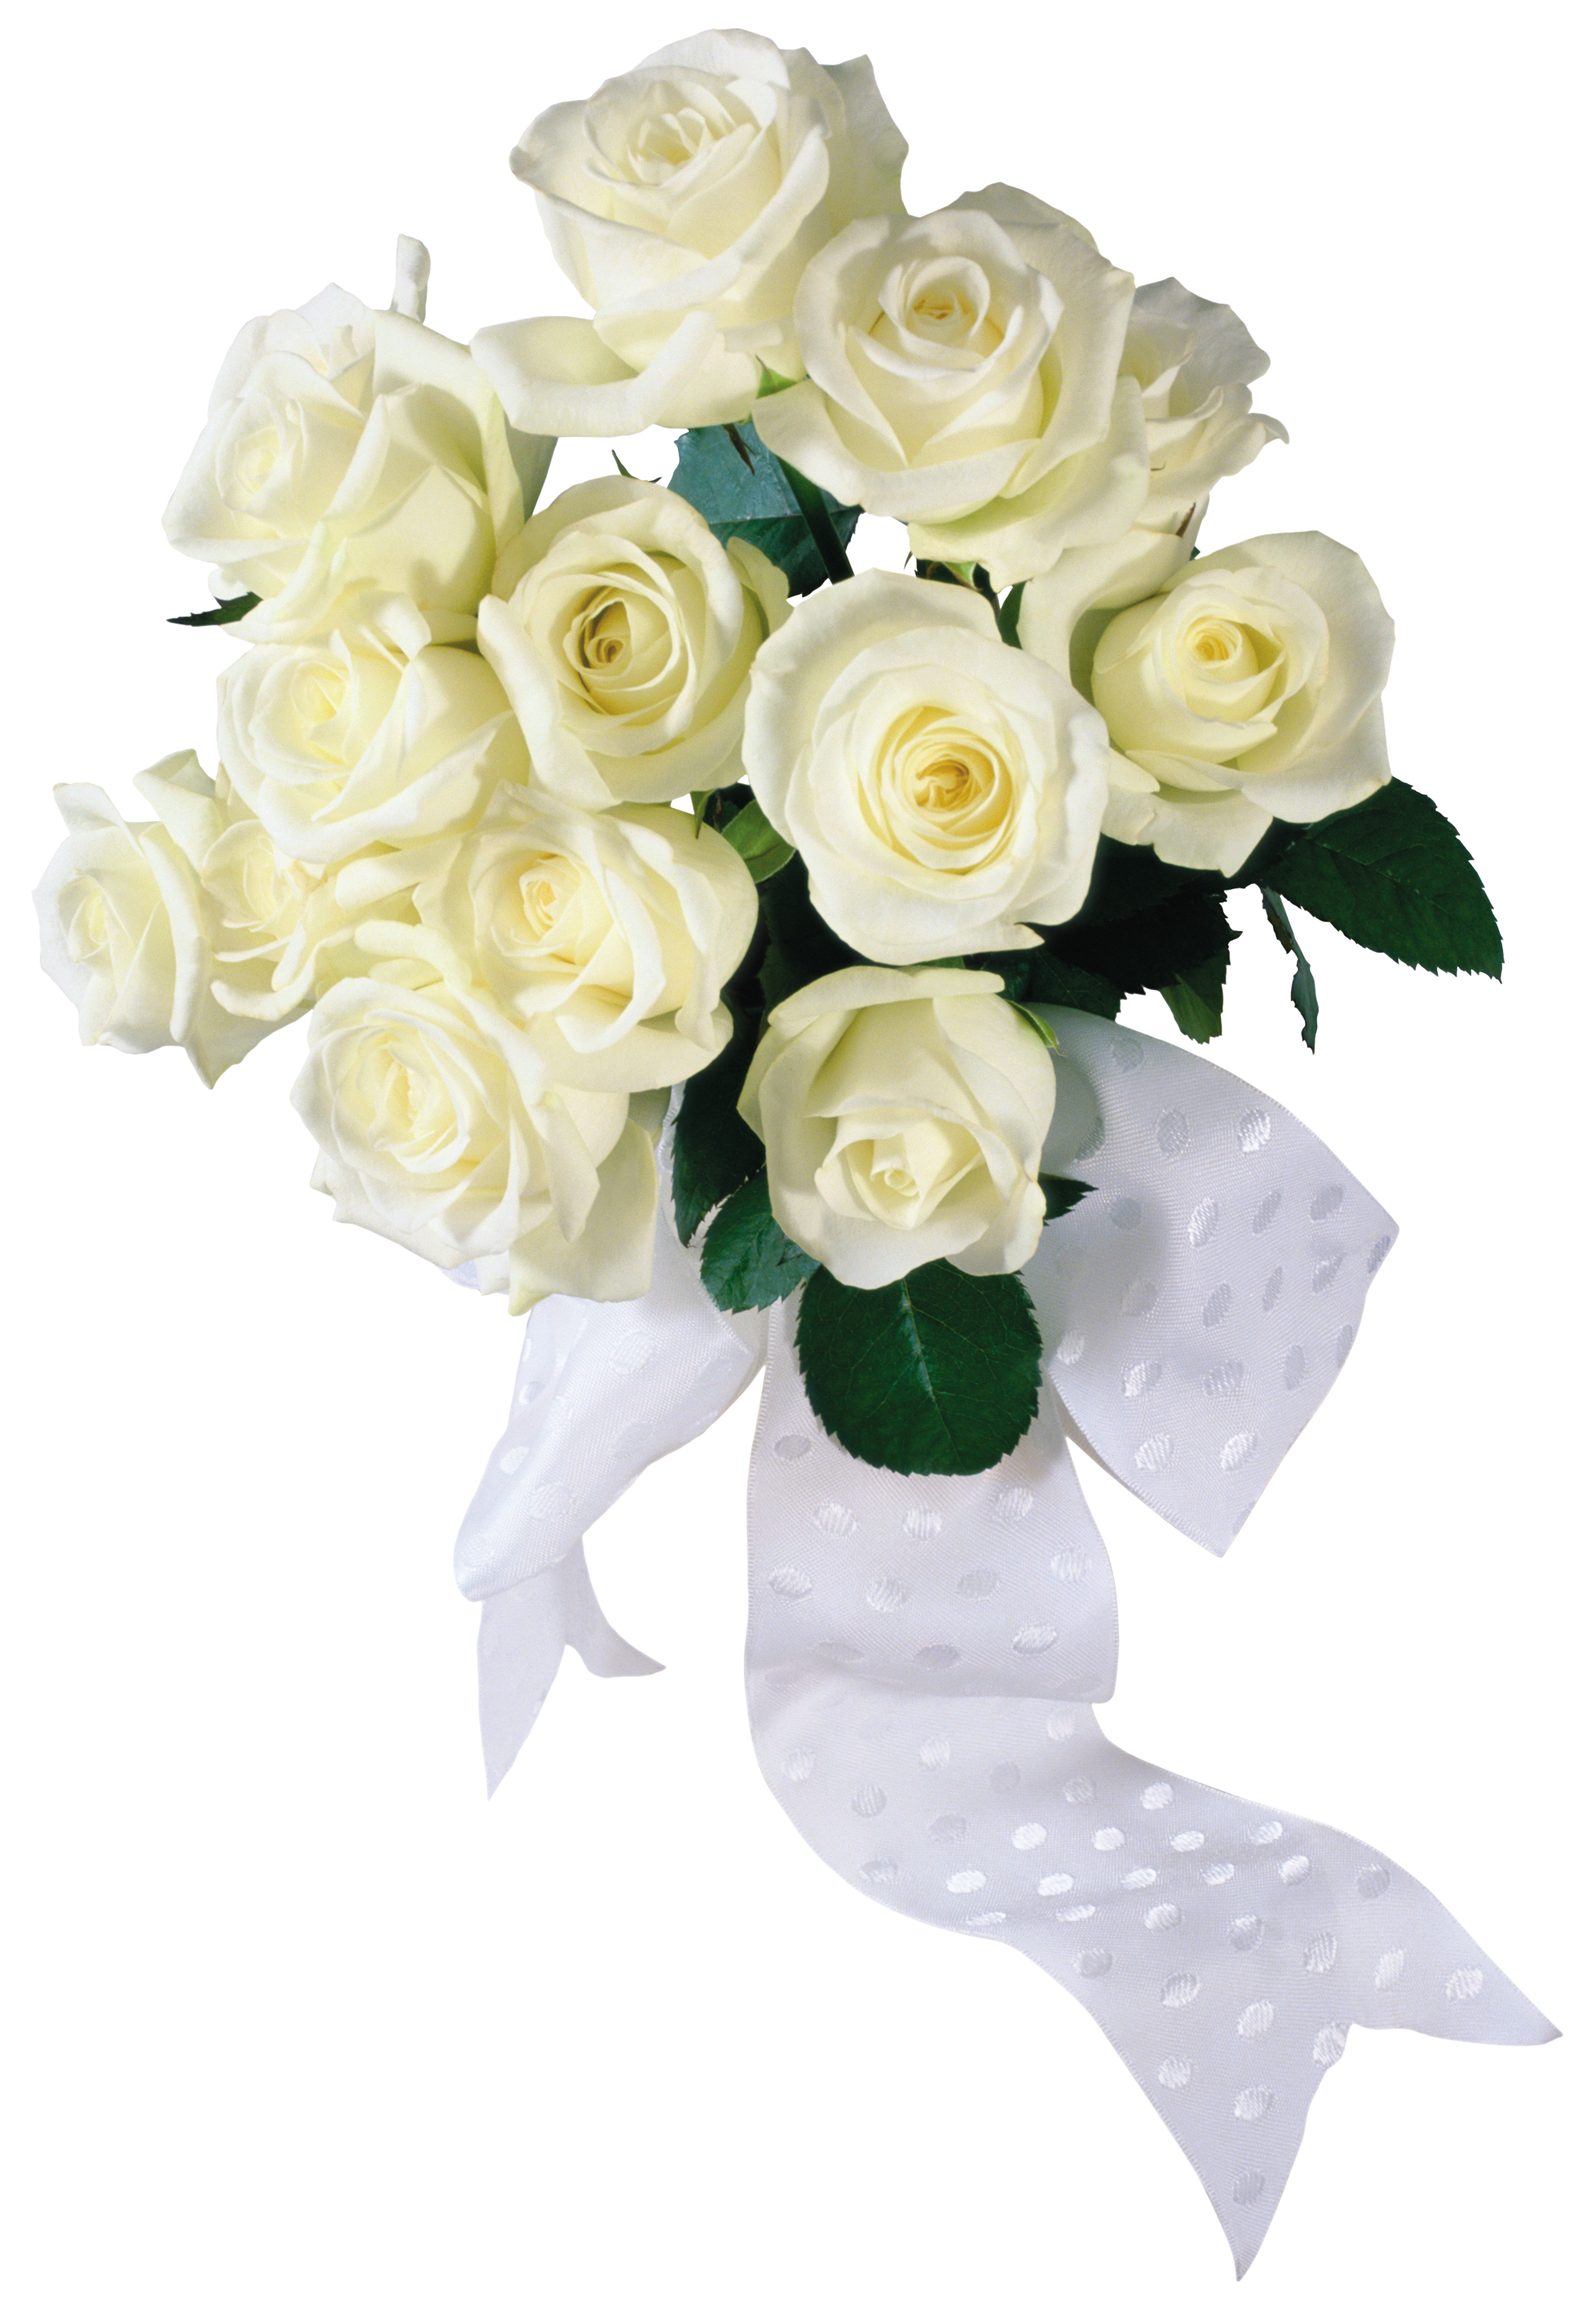 Black and white flower bouquet clipart clip black and white library White roses PNG images, free download flower pixtures clip black and white library